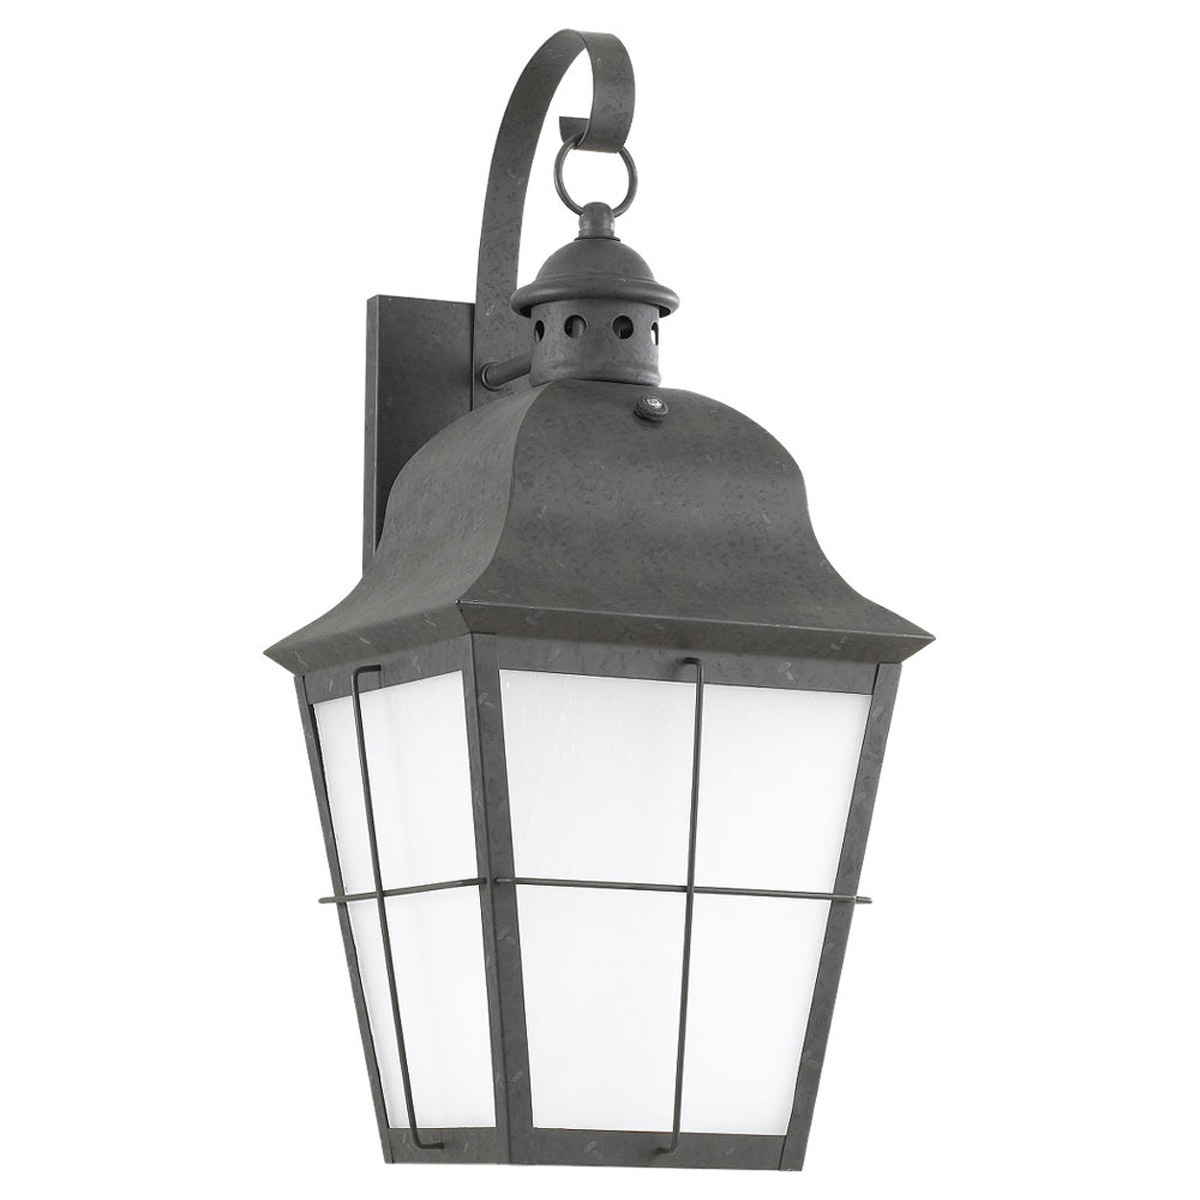 Sea Gull Lighting Chatham 1 Light Outdoor Wall Lantern in Oxidized Bronze 89273PBLE-46 photo